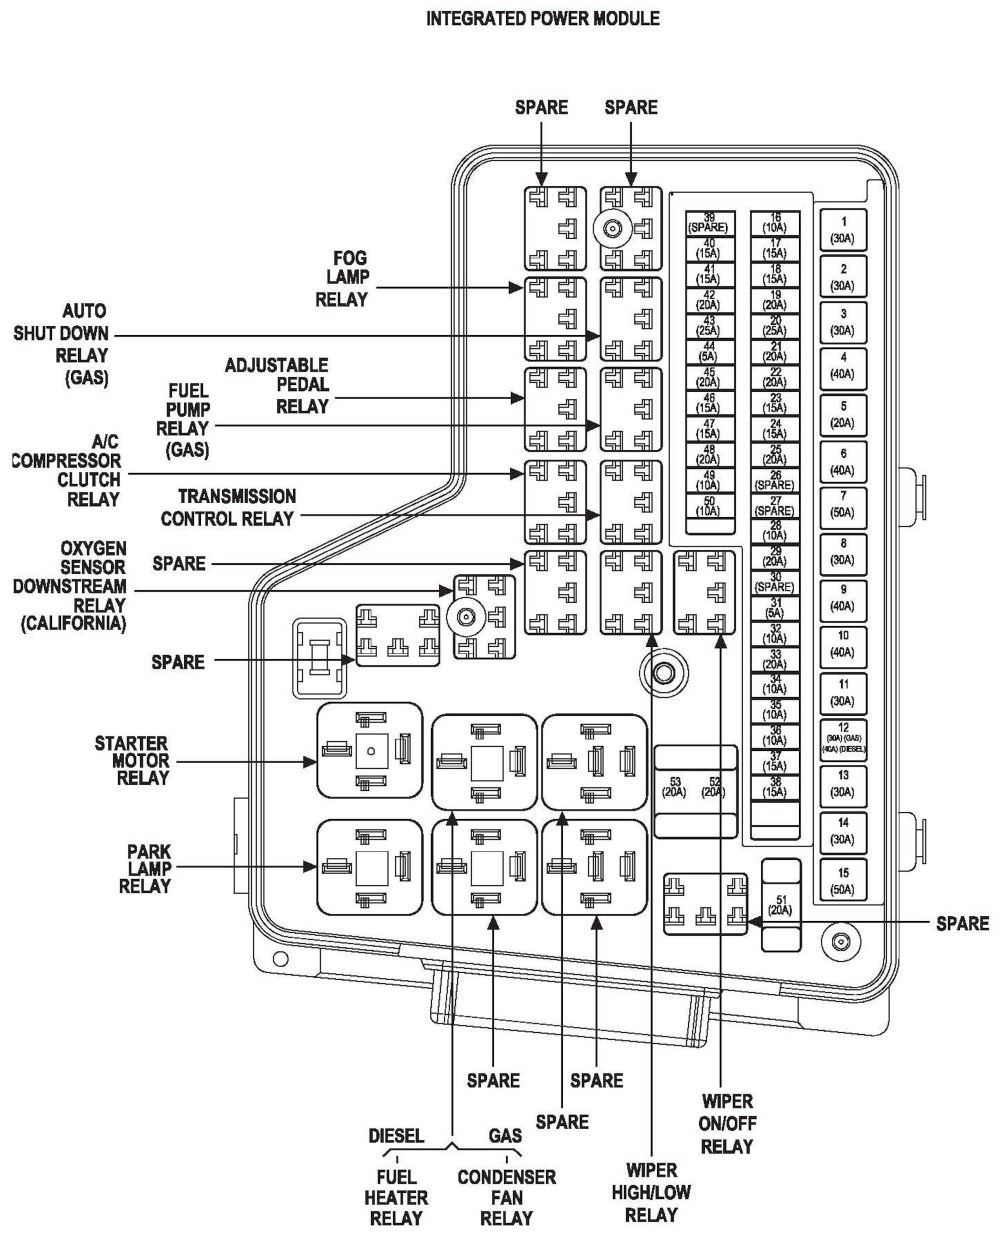 medium resolution of 2003 dodge ram 2500 fuse box diagram wiring diagrams mon 2003 dodge ram 2500 fuse box diagram 2003 dodge ram 2500 fuse box